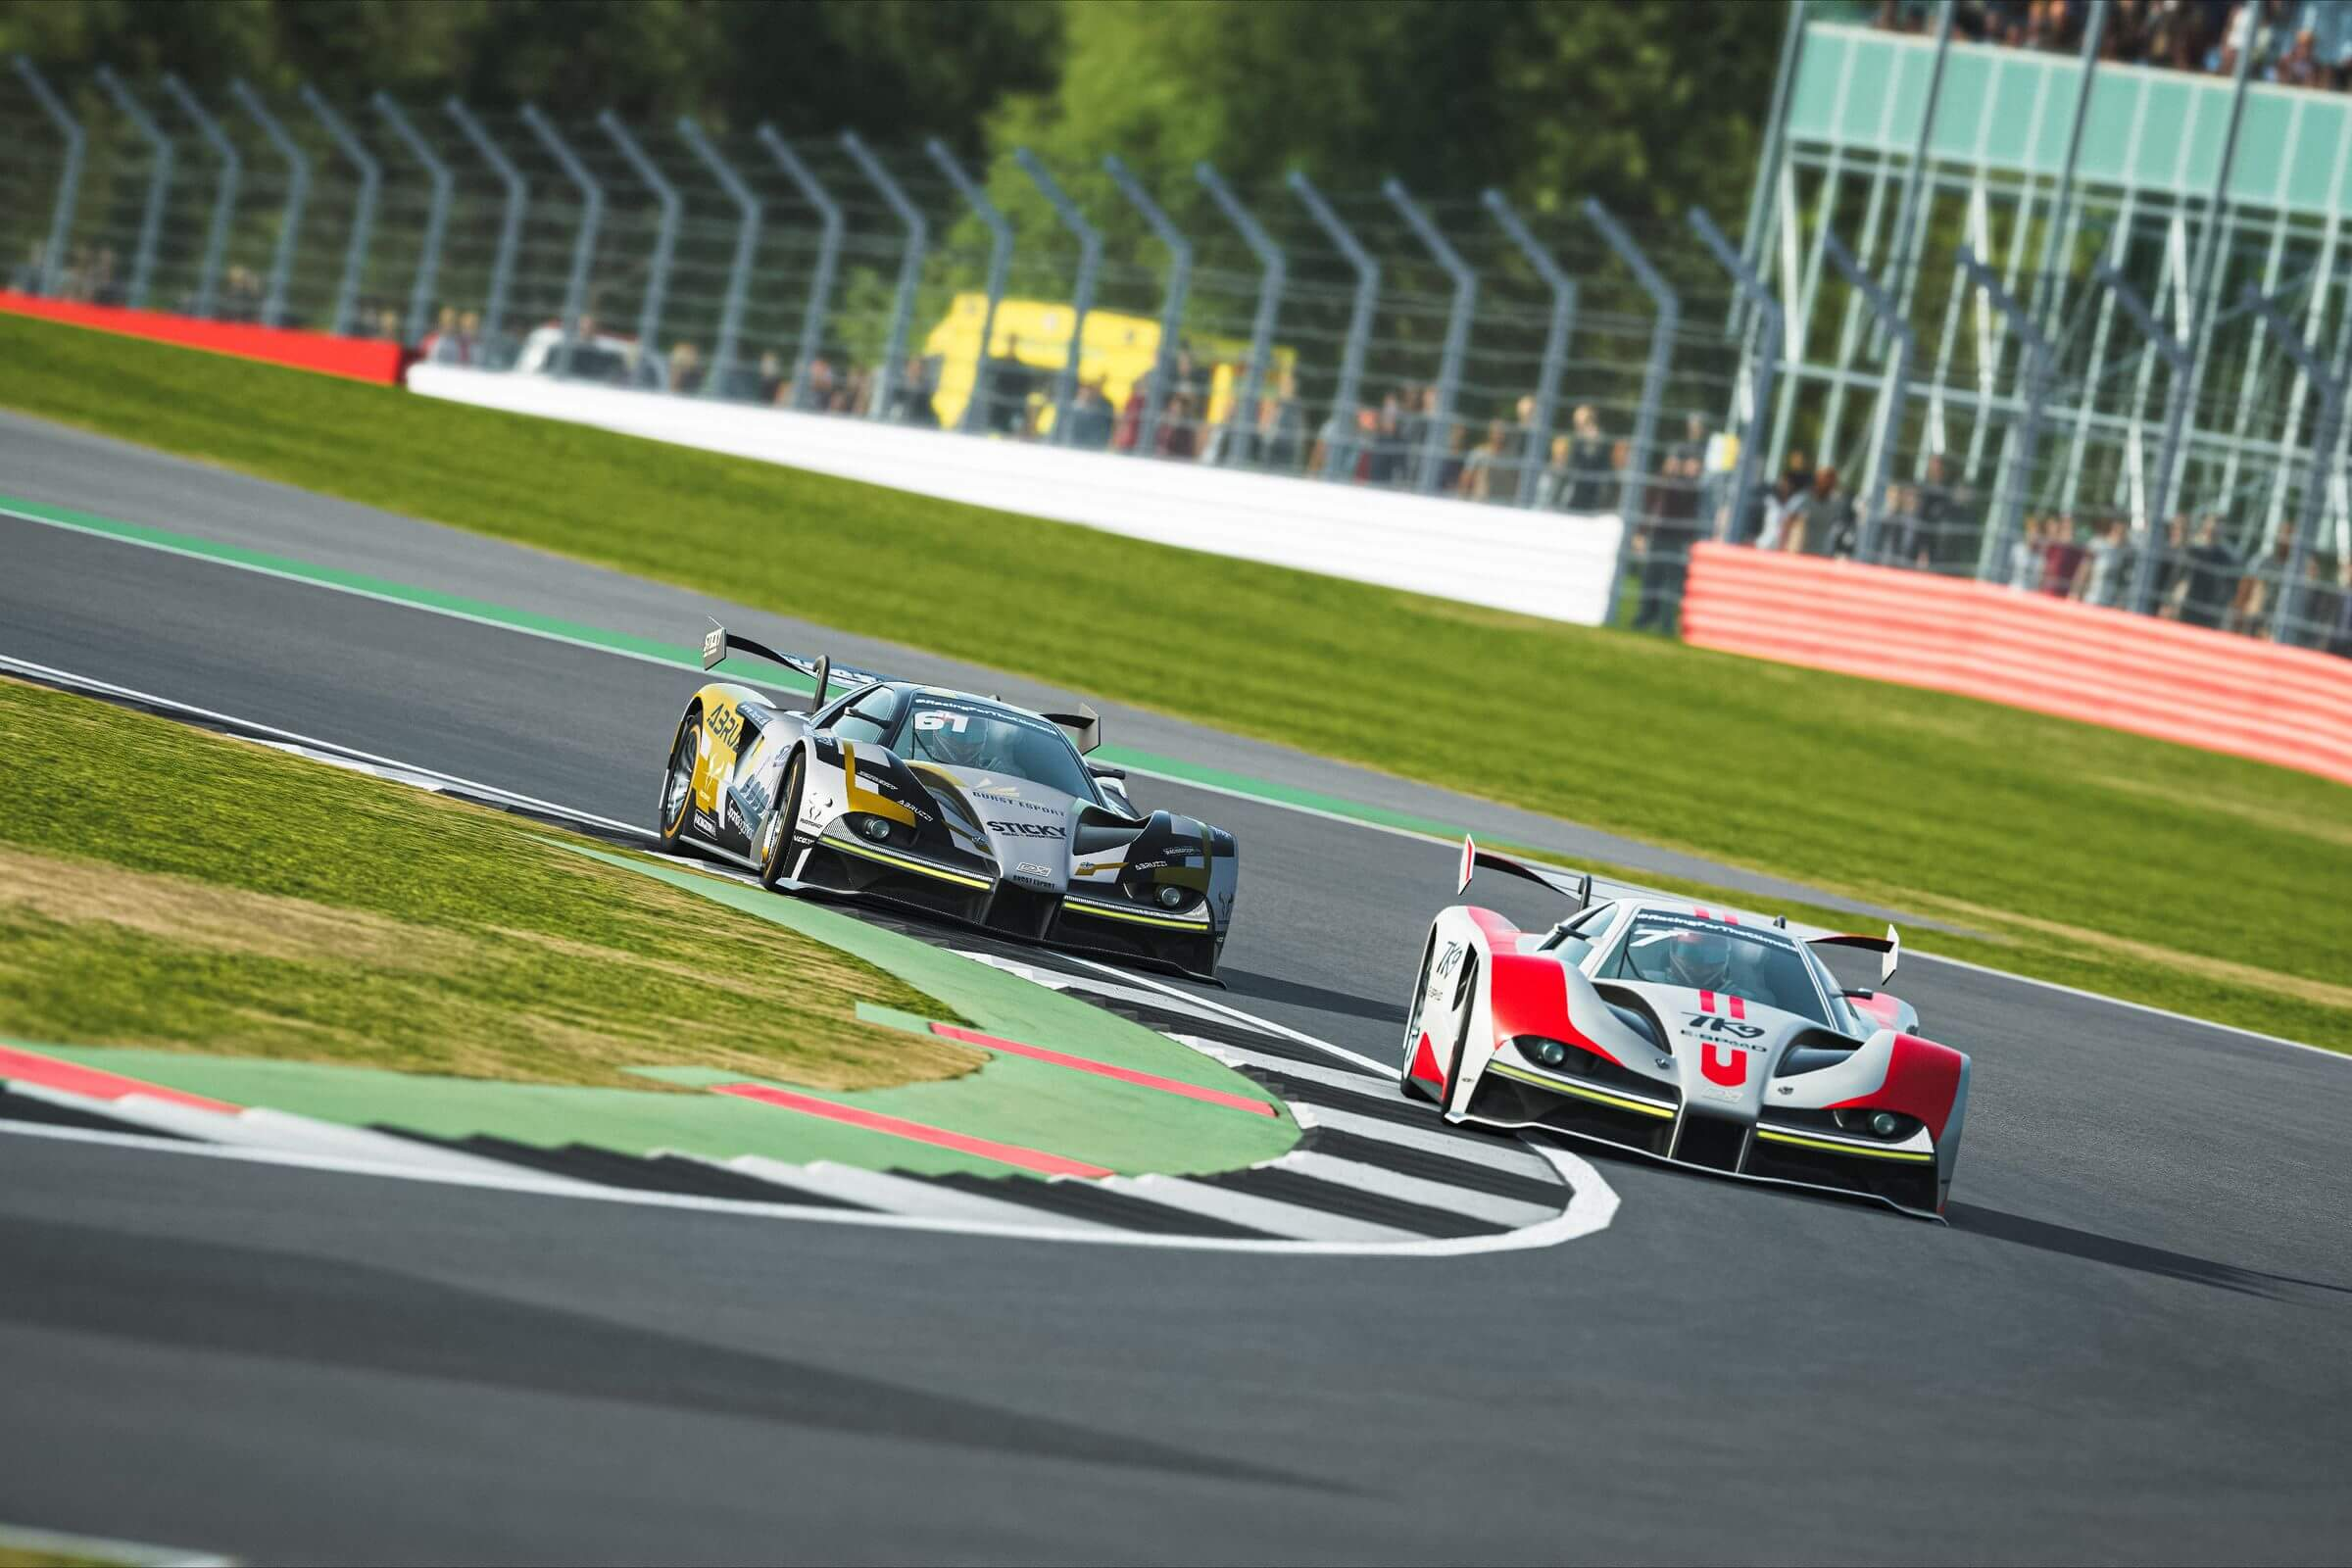 Simracing: Lasse Sorensen & Team TK9 E-SPEED gewinnen 1. World-eX-Rennen in Silverstone